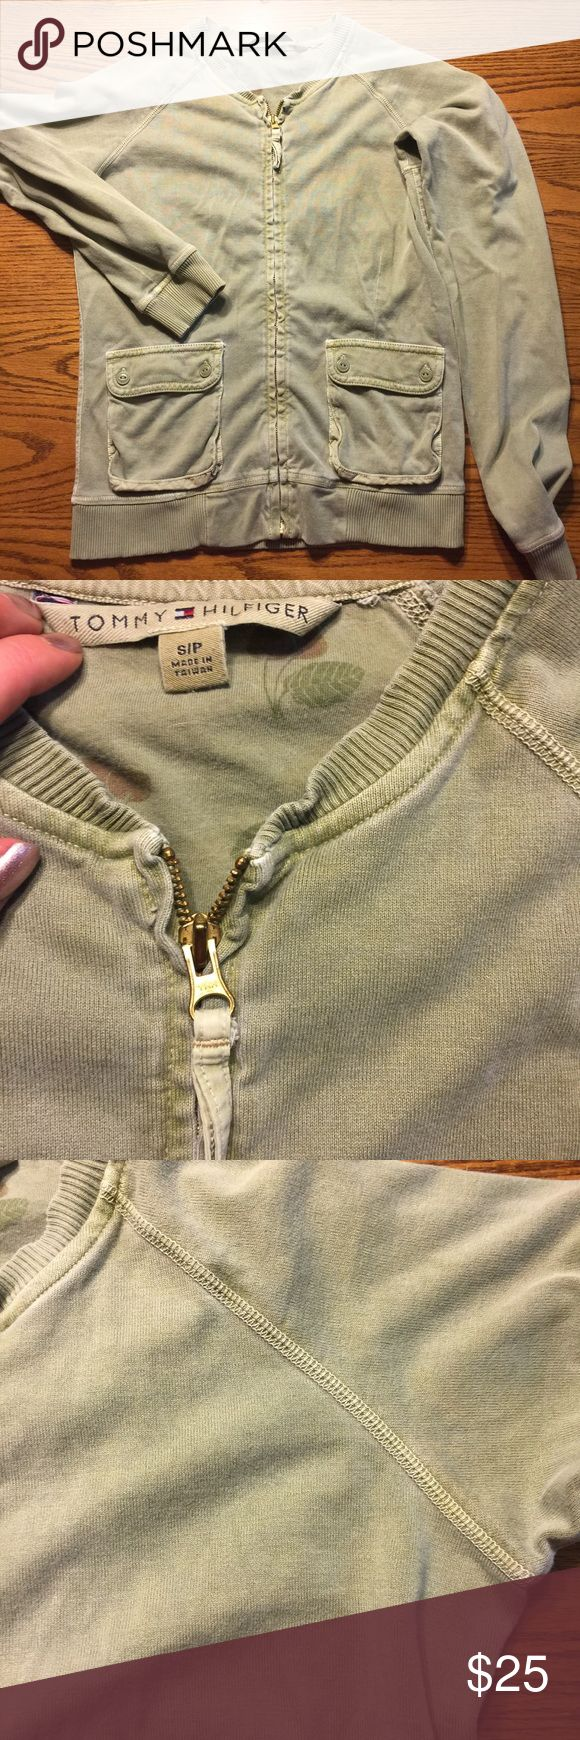 NWOT! Zip up sweatshirt jacket. This is warm! Never been worn. Great quality. Women's size small petite. Tommy Hilfiger Jackets & Coats